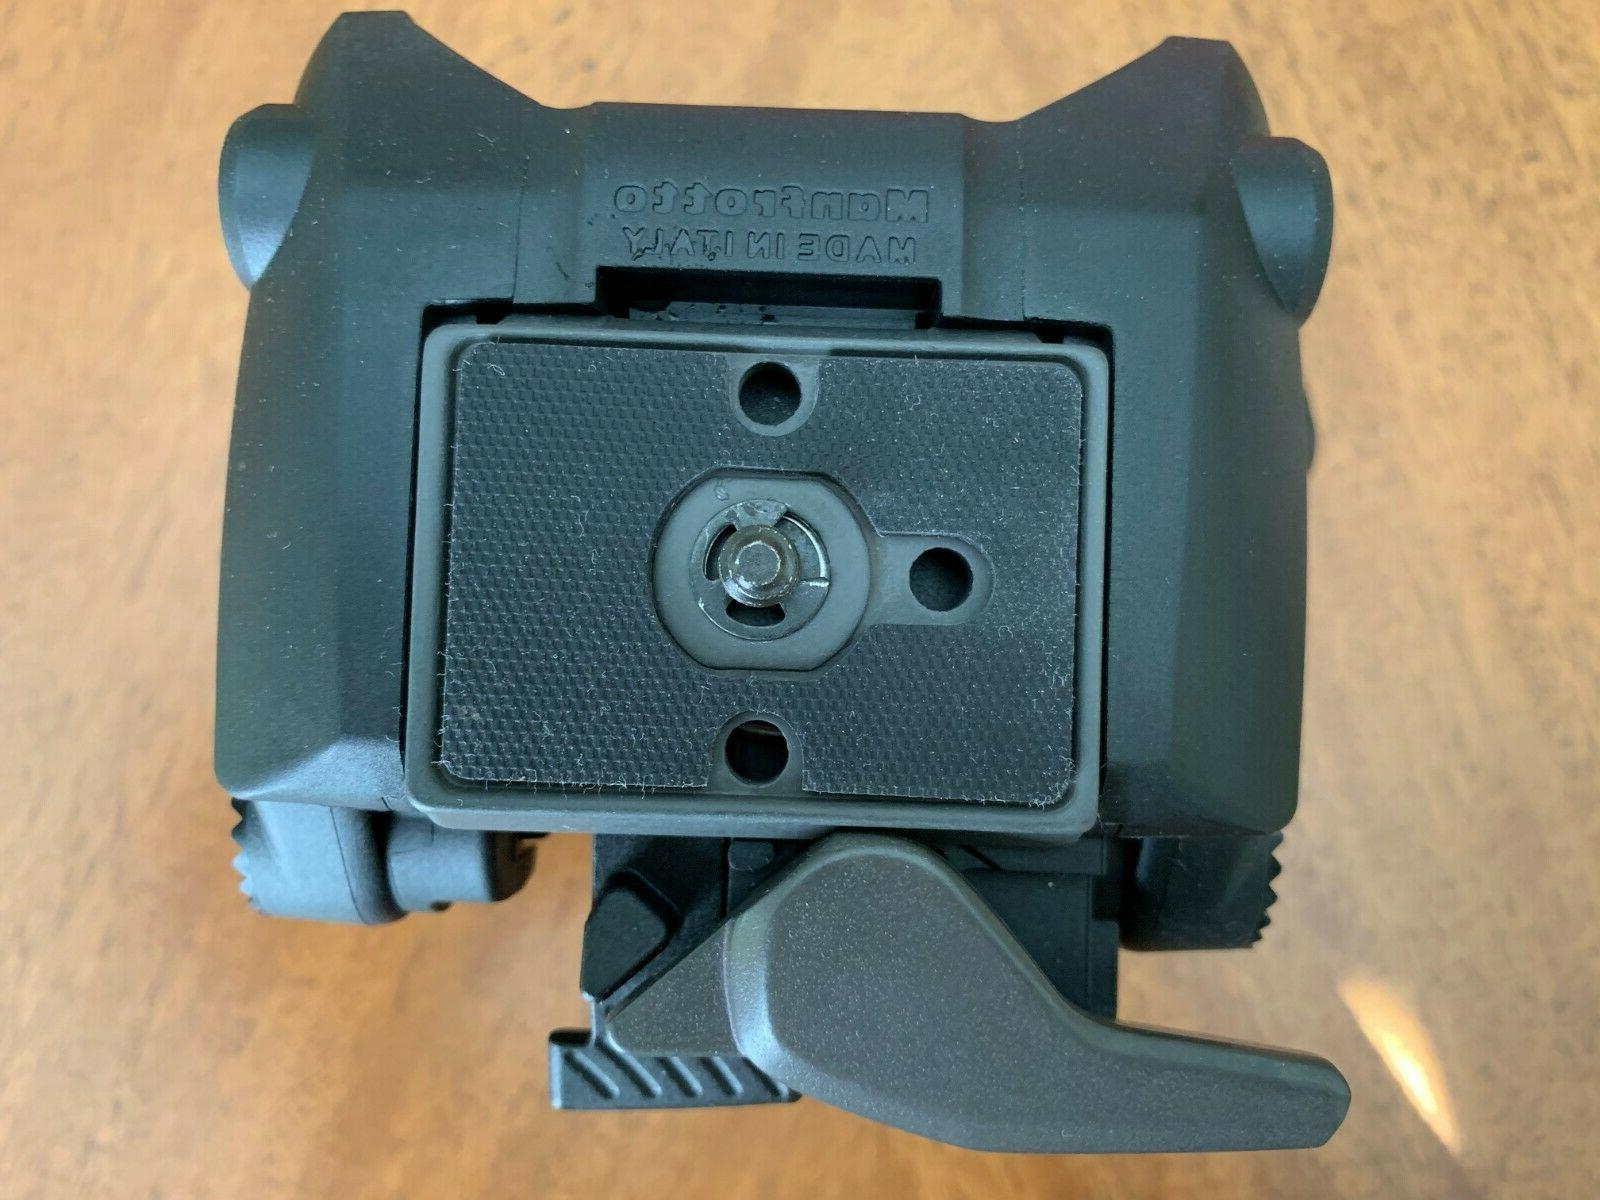 Manfrotto XPRO FLUID HEAD Release Plate